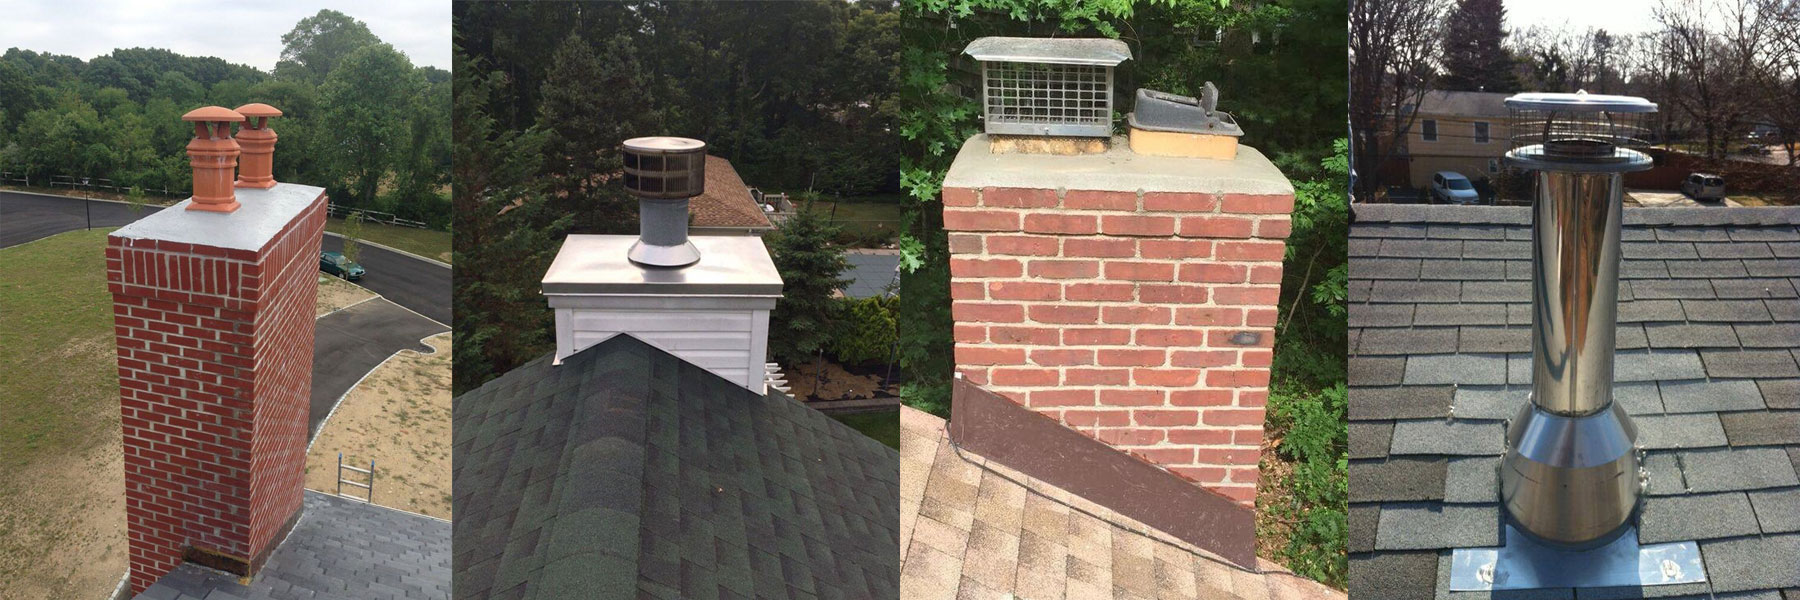 Chimney Repair Long Island Chimney Leak Repair